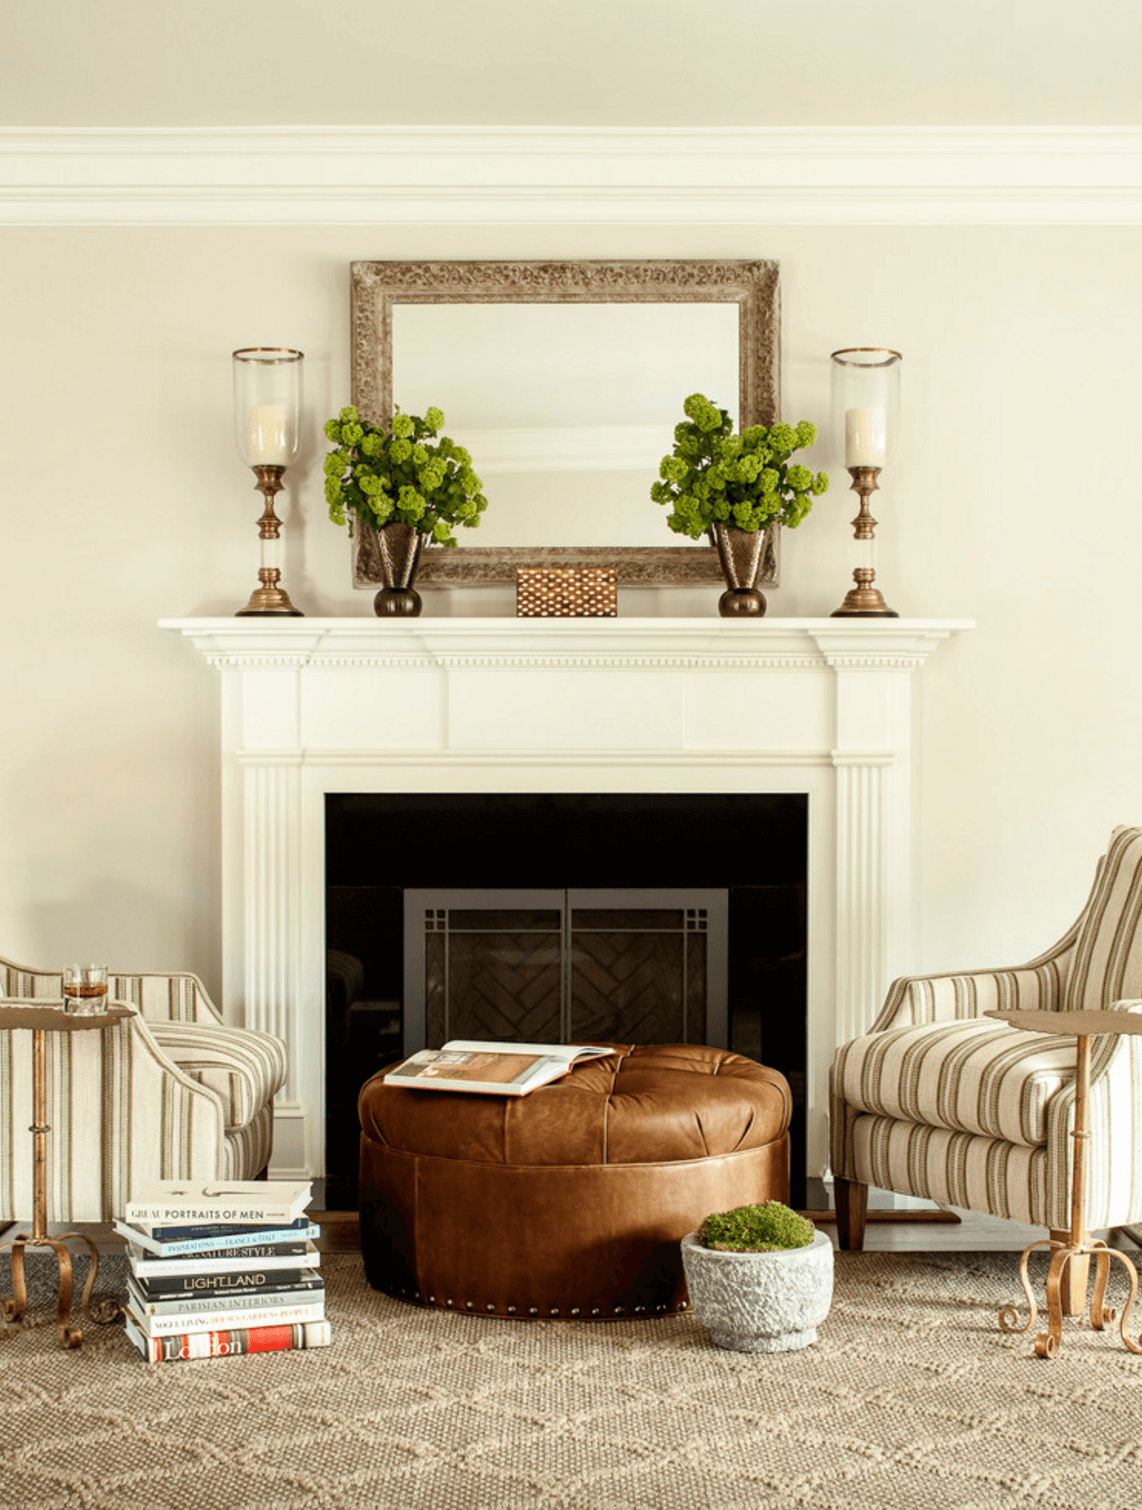 15 Mantel Decorating Ideas for a Fireplace